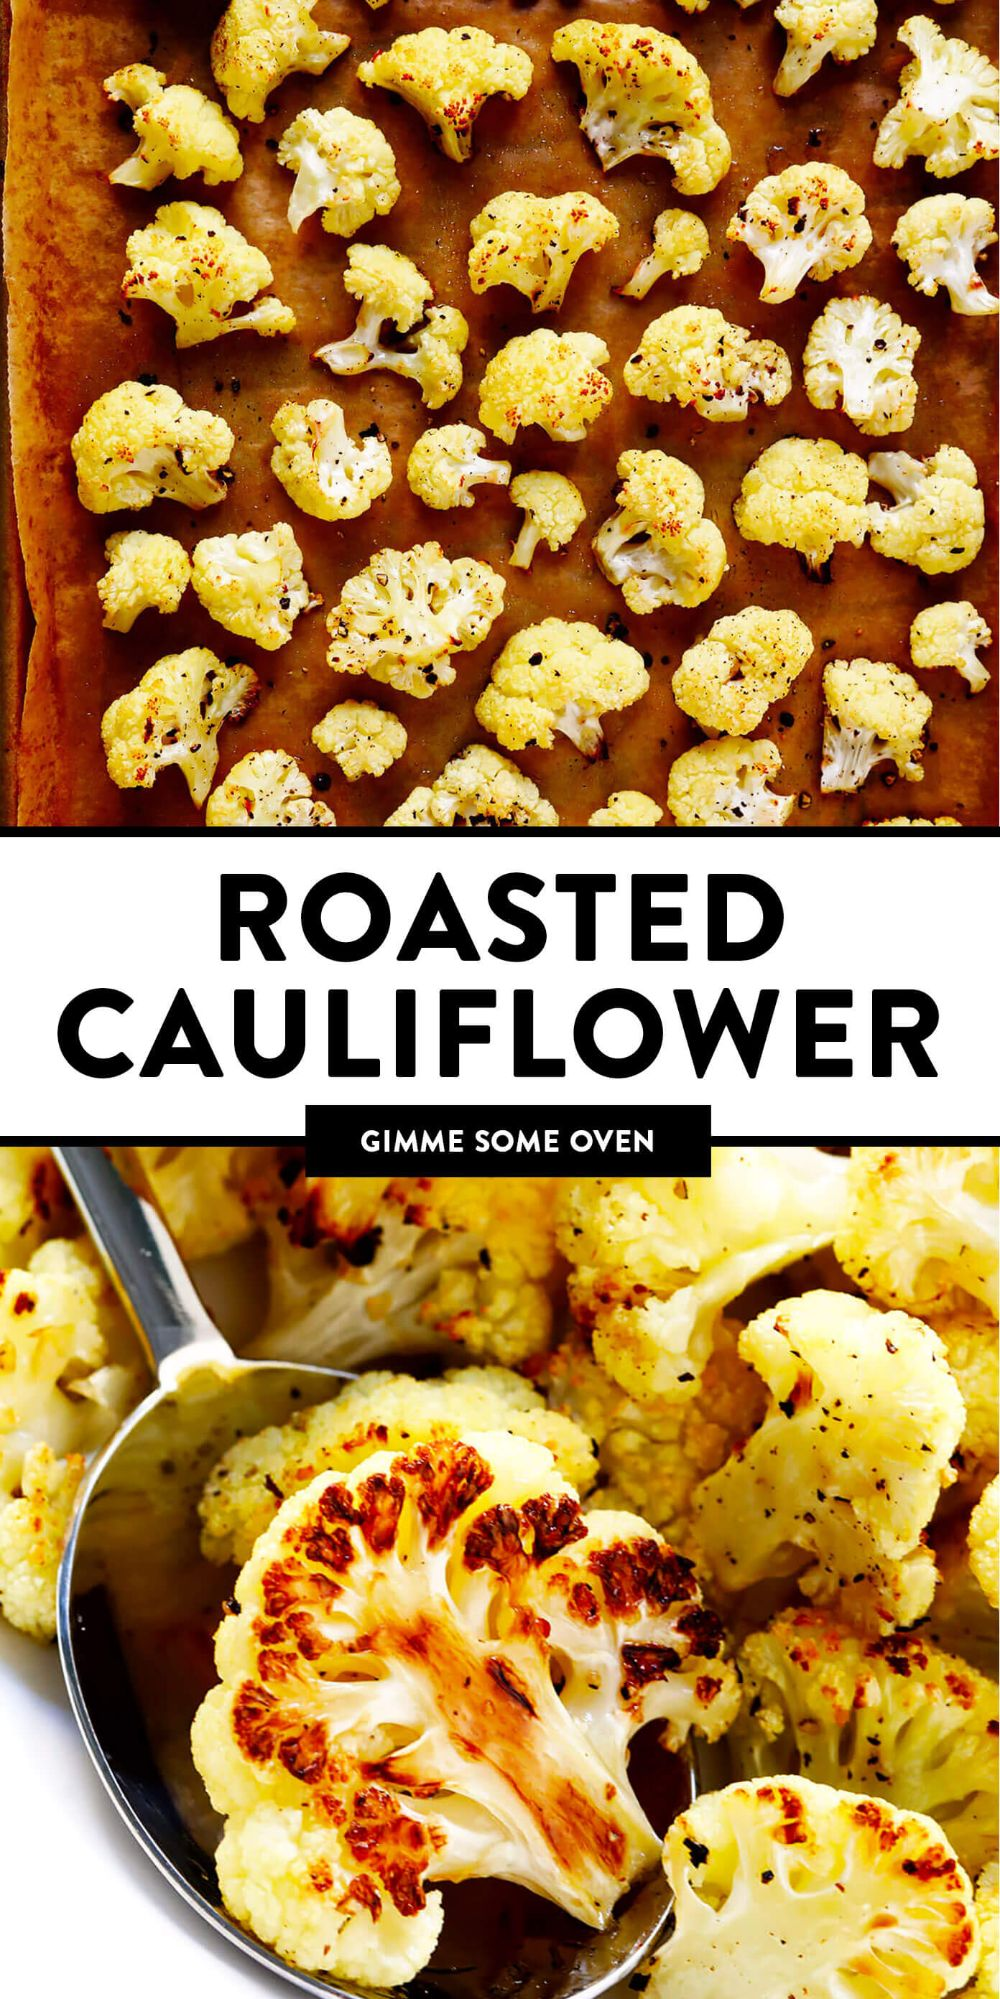 The BEST Roasted Cauliflower recipe -- super easy to make in the oven, naturally #glutenfree and #vegan, and easy to customize with any of your favorite seasonings. It's the perfect healthy side dish. Or perfect for adding to a salad, soup, pizza, dip, pasta, tacos or more! | Gimme Some Oven #roasted #cauliflower #healthy #vegetable #side #glutenfree #vegan